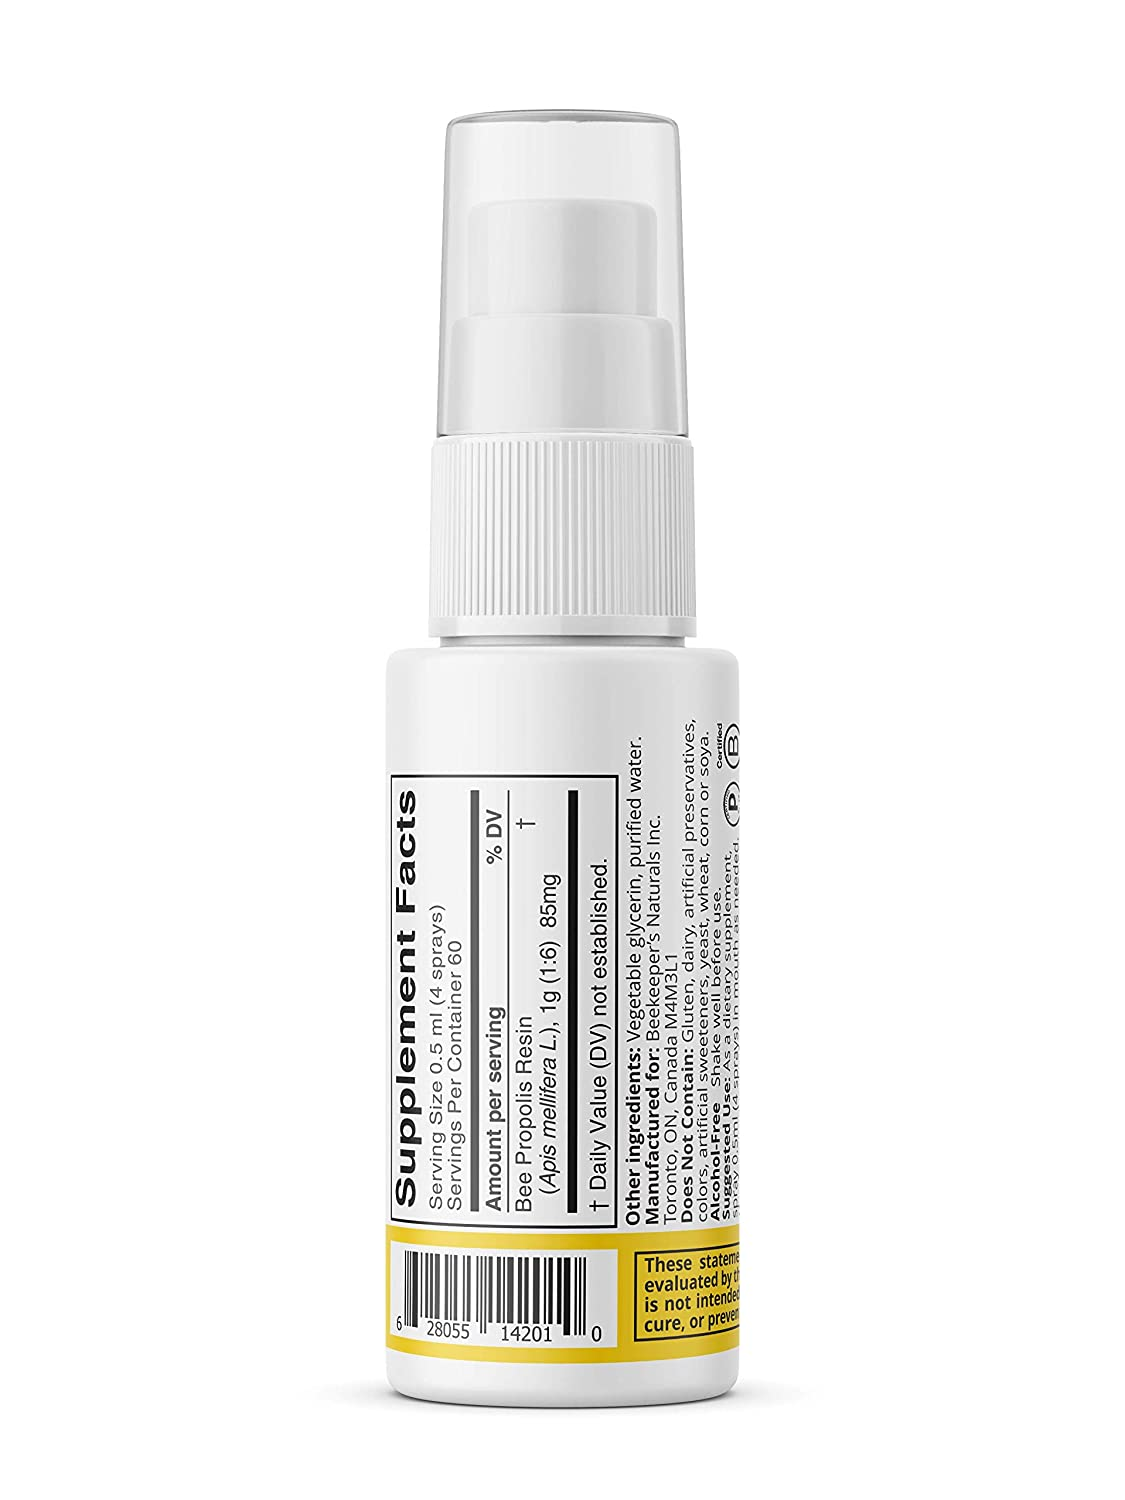 Bee Propolis Throat Spray by Beekeeper's Naturals | Premium 95% Bee  Propolis Extract | Natural Throat Relief and Immune Support | Great for  Cold & Flu